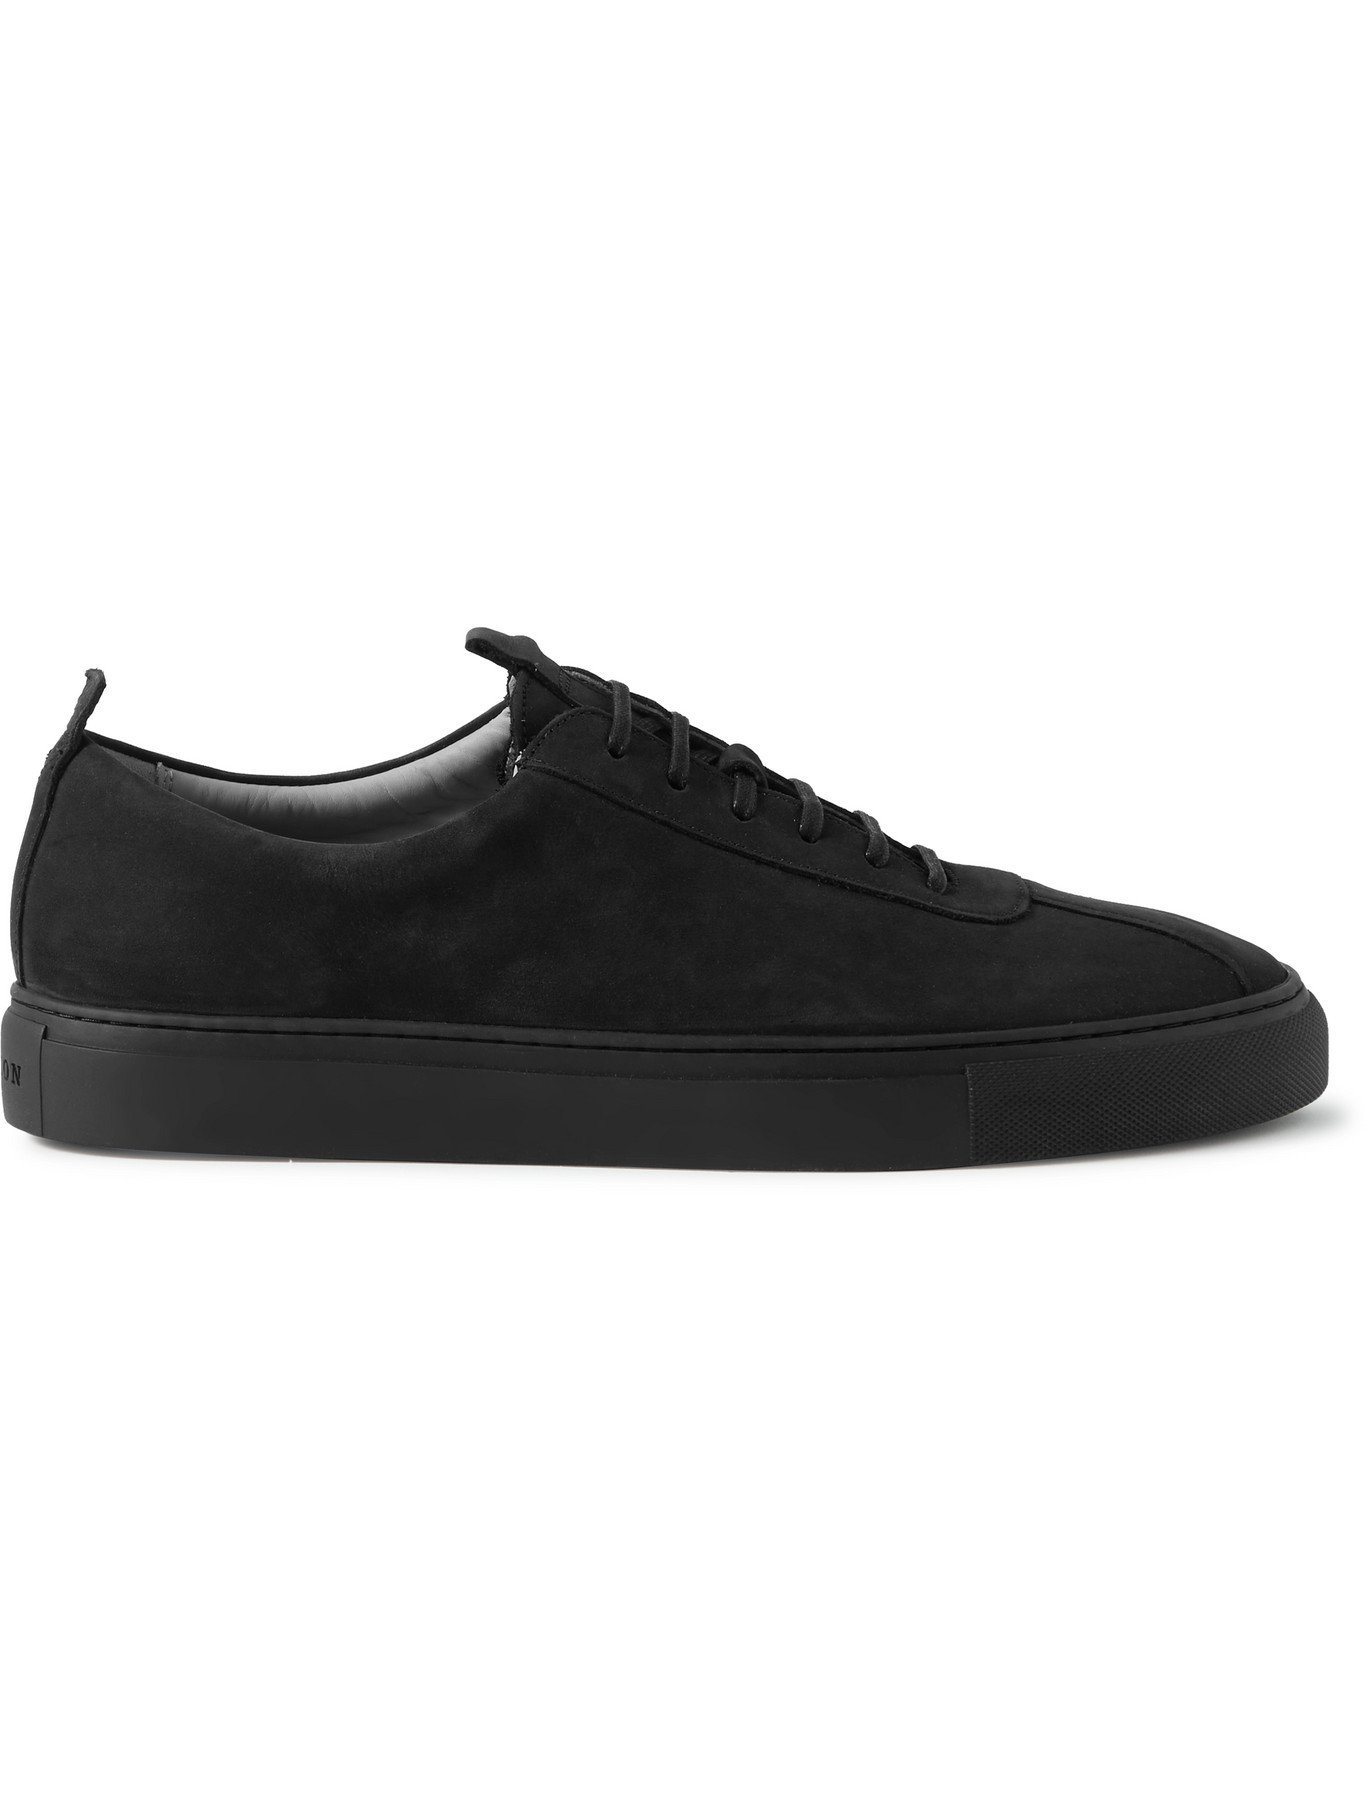 Photo: GRENSON - Nubuck Sneakers - Black